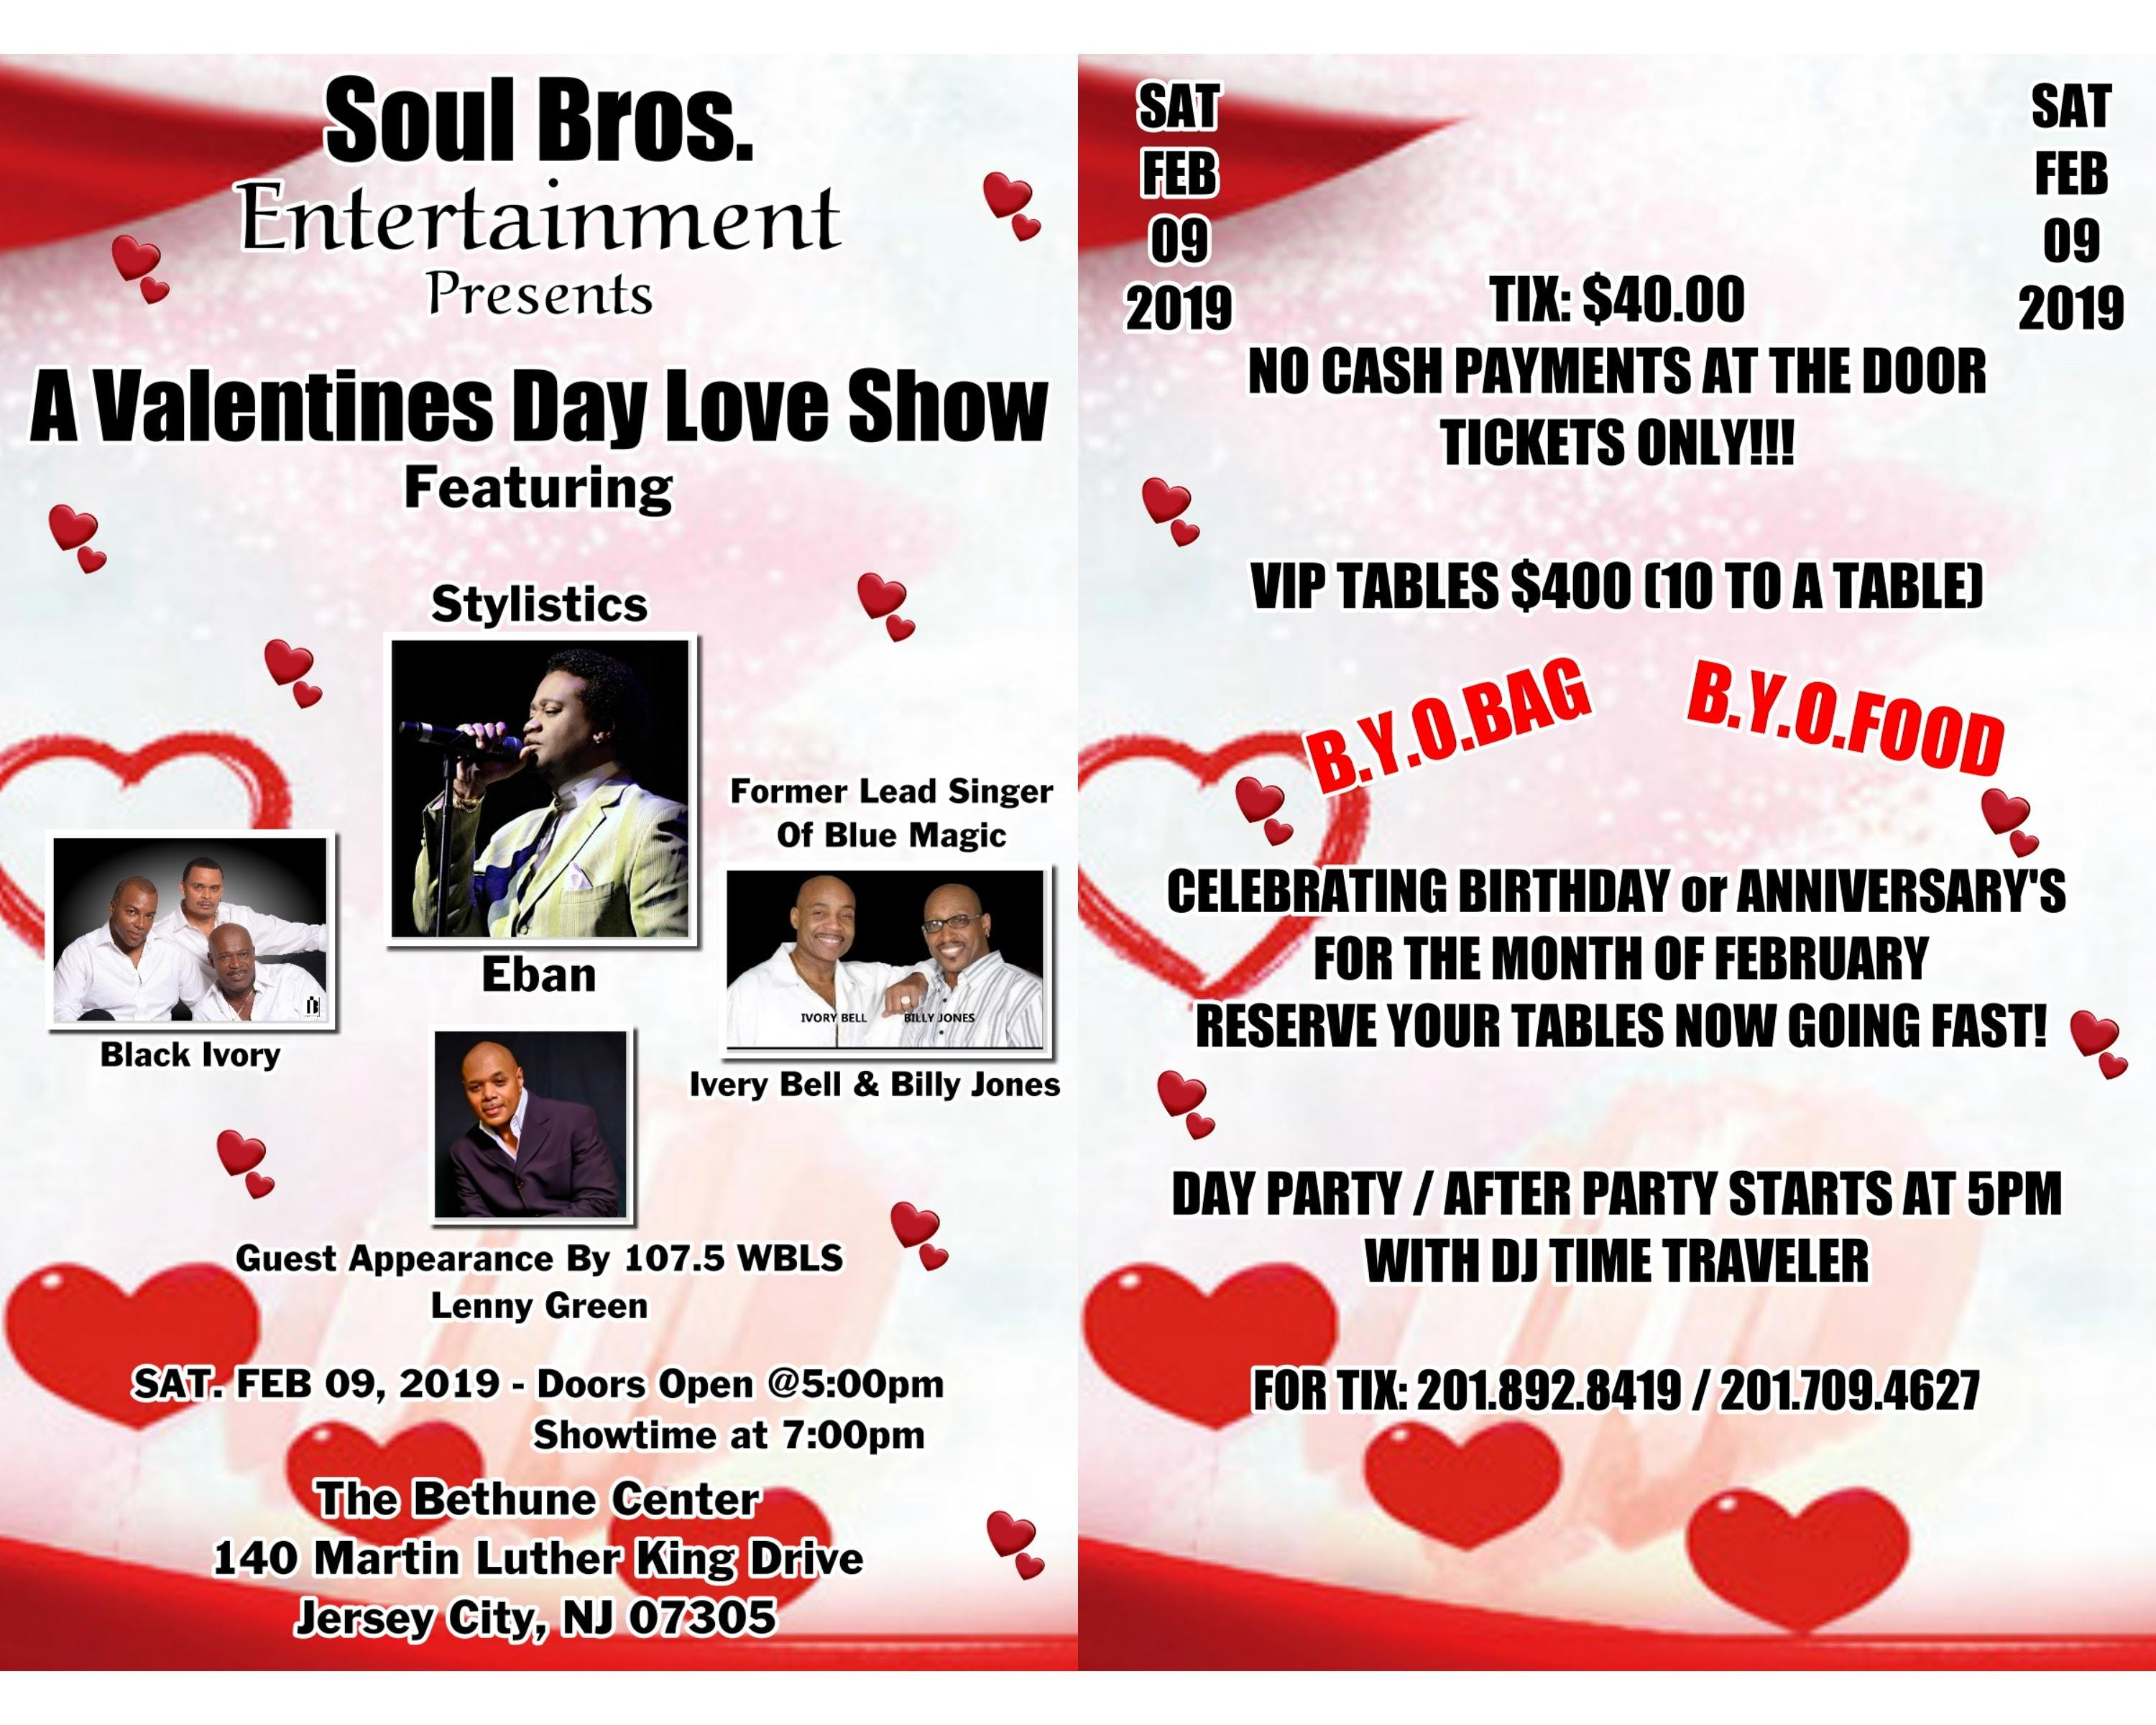 Valentines Day Events In Toms River Today And Upcoming Valentines